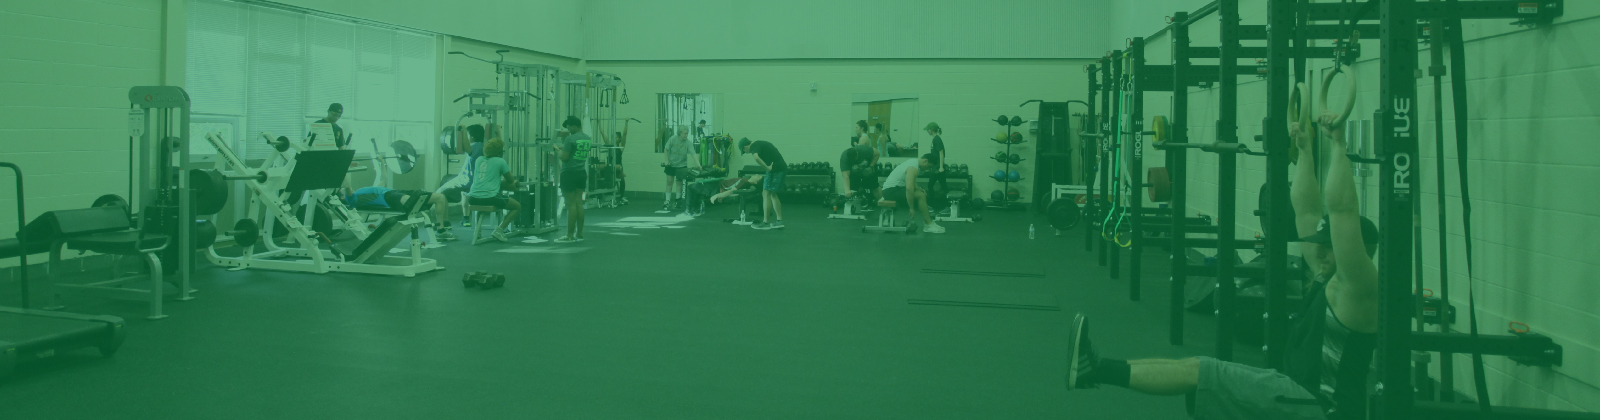 Kinesiology Weight Training Room